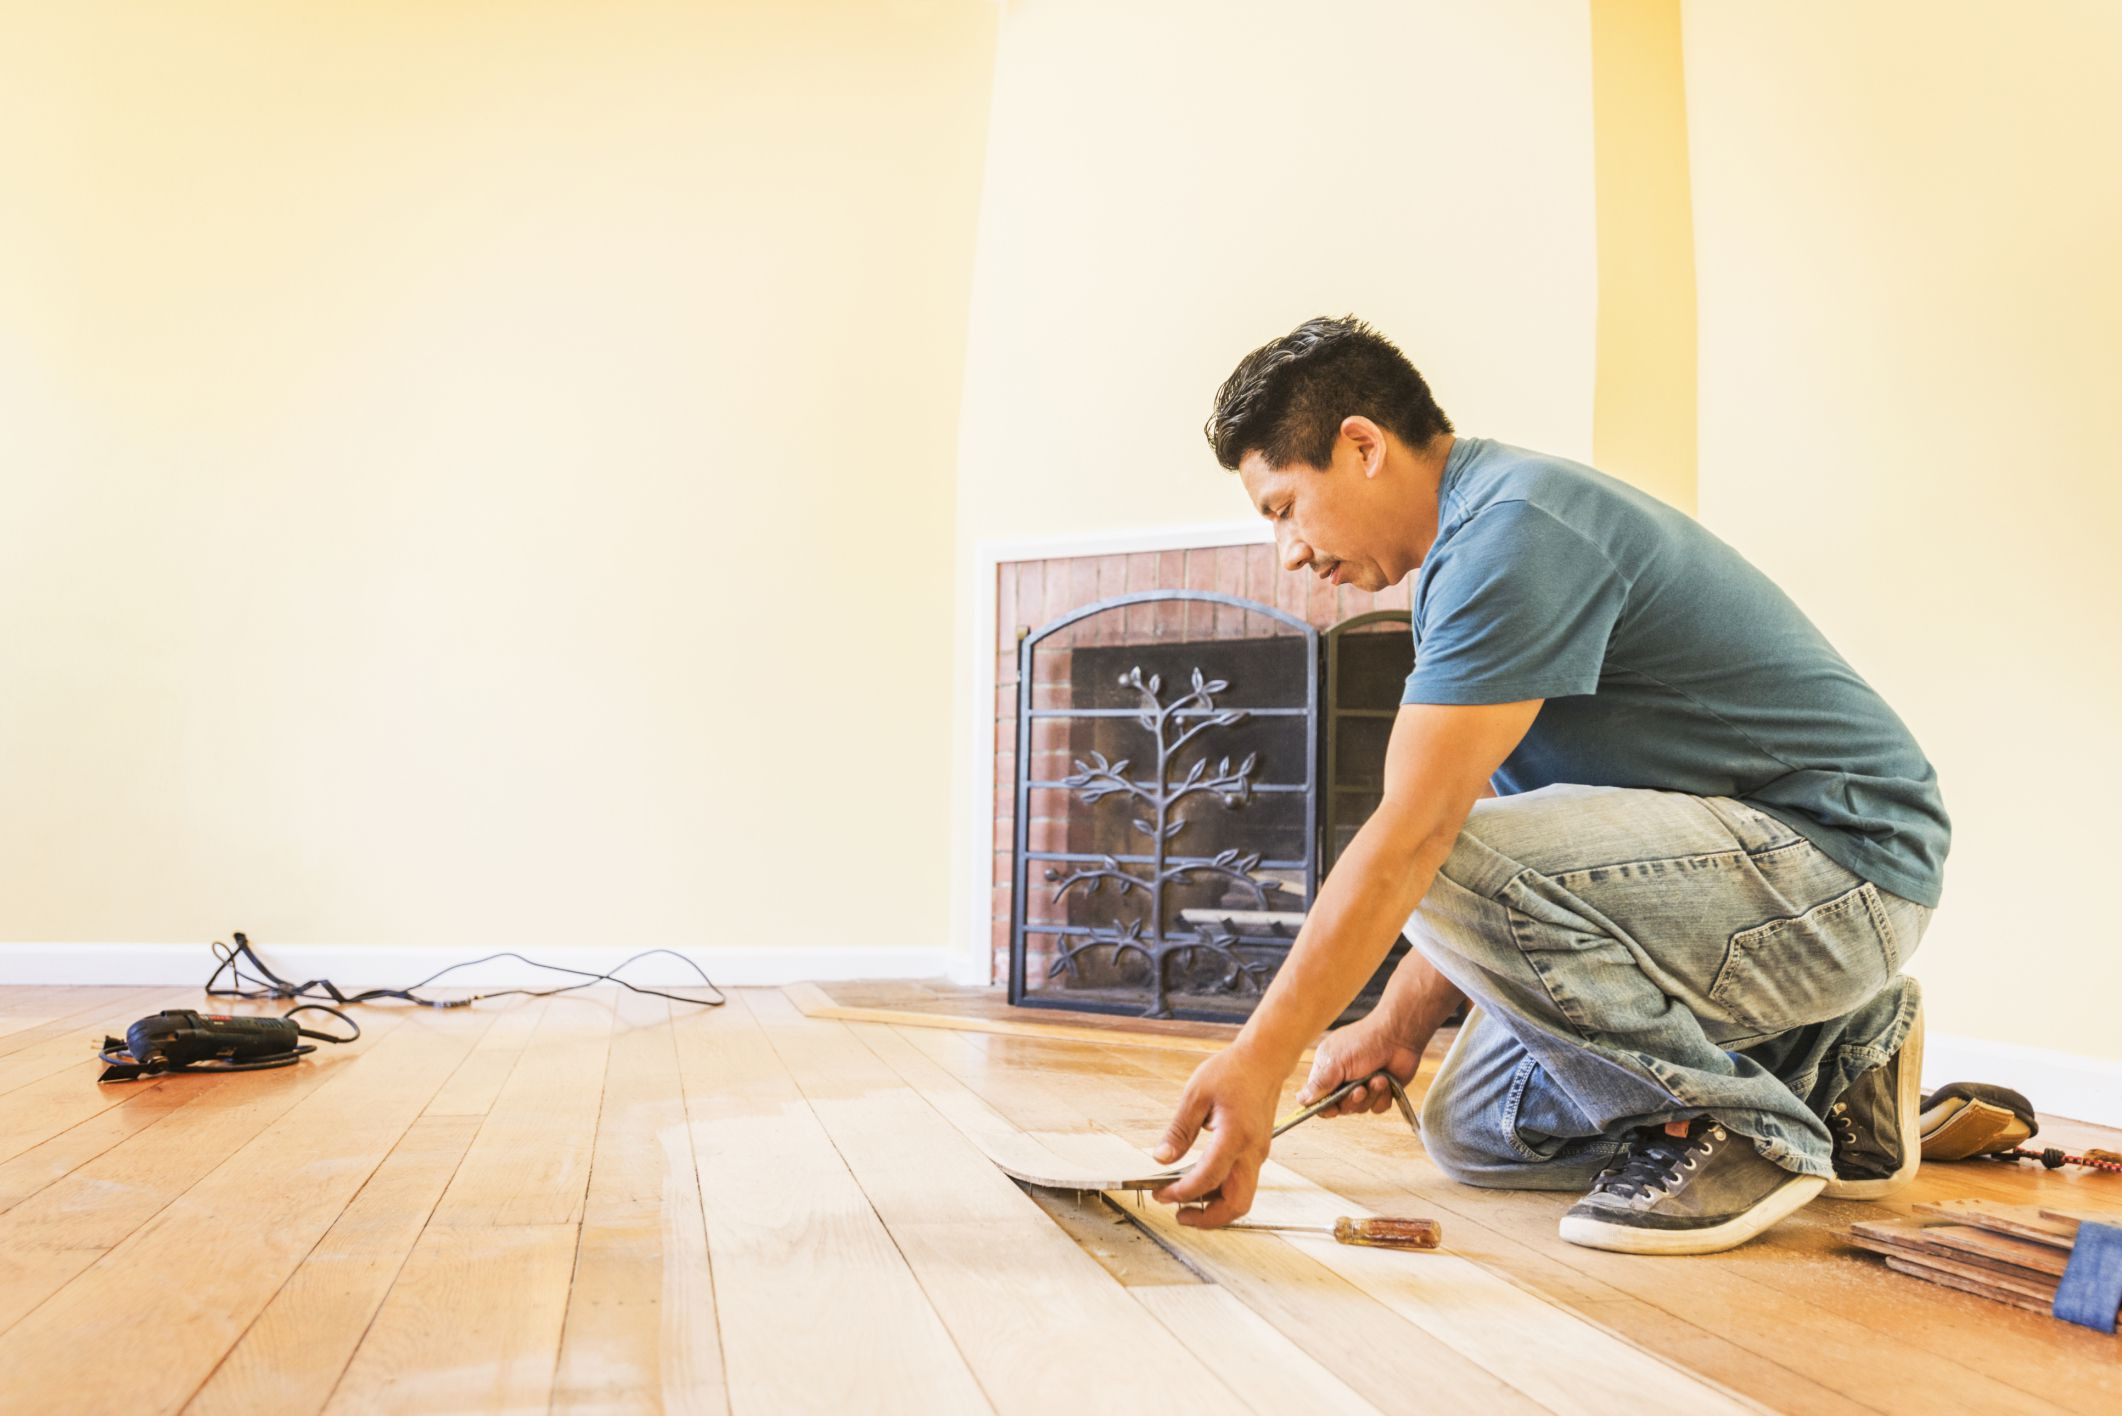 Best Product for Finishing Hardwood Floors Of solid Hardwood Flooring Costs for Professional Vs Diy within Installwoodflooring 592016327 56684d6f3df78ce1610a598a